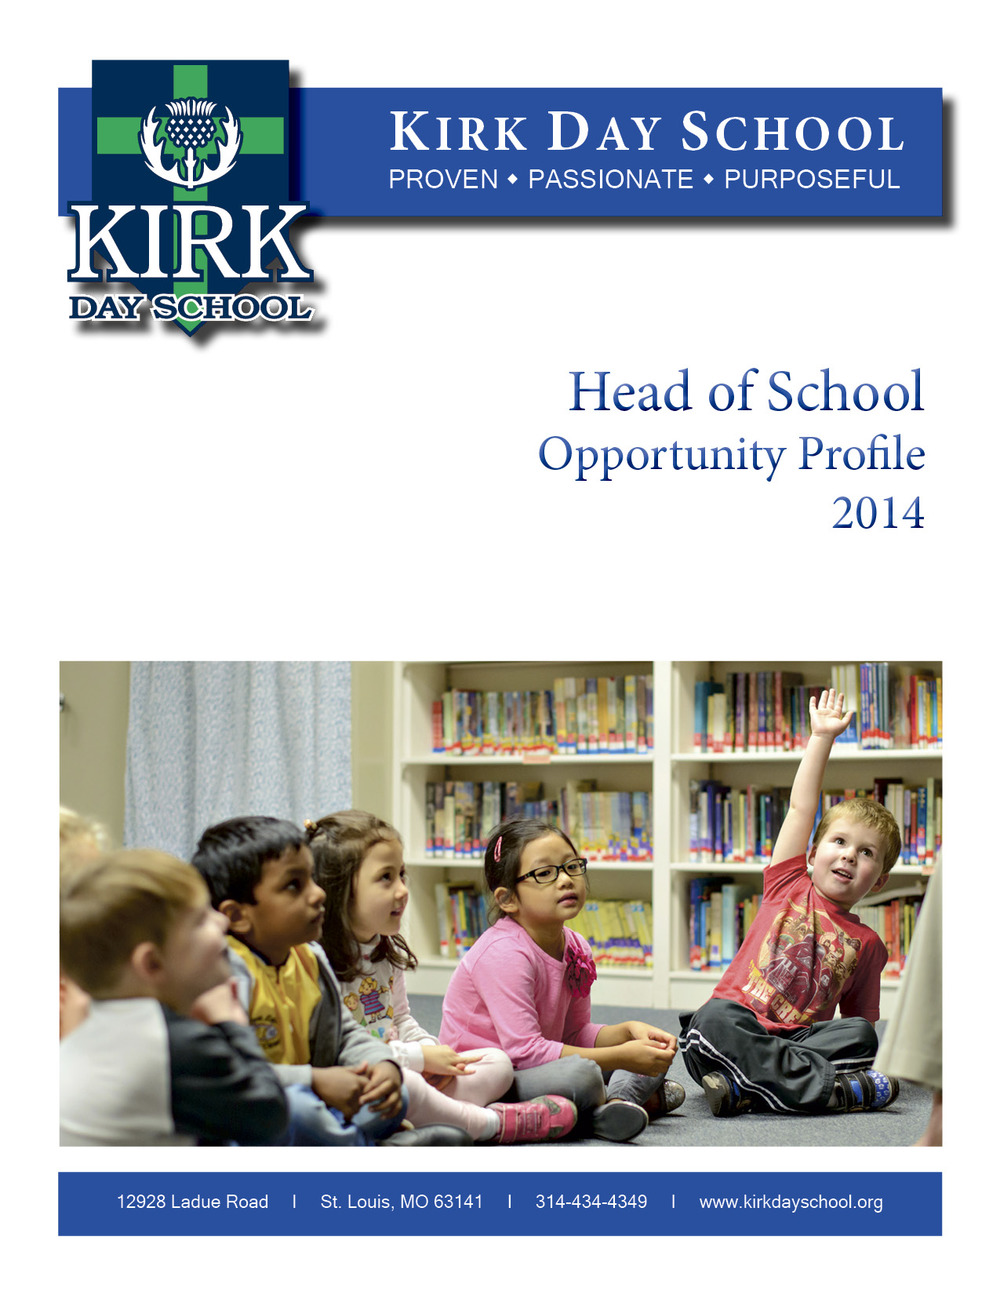 Read the Head of School Opportunity Profile